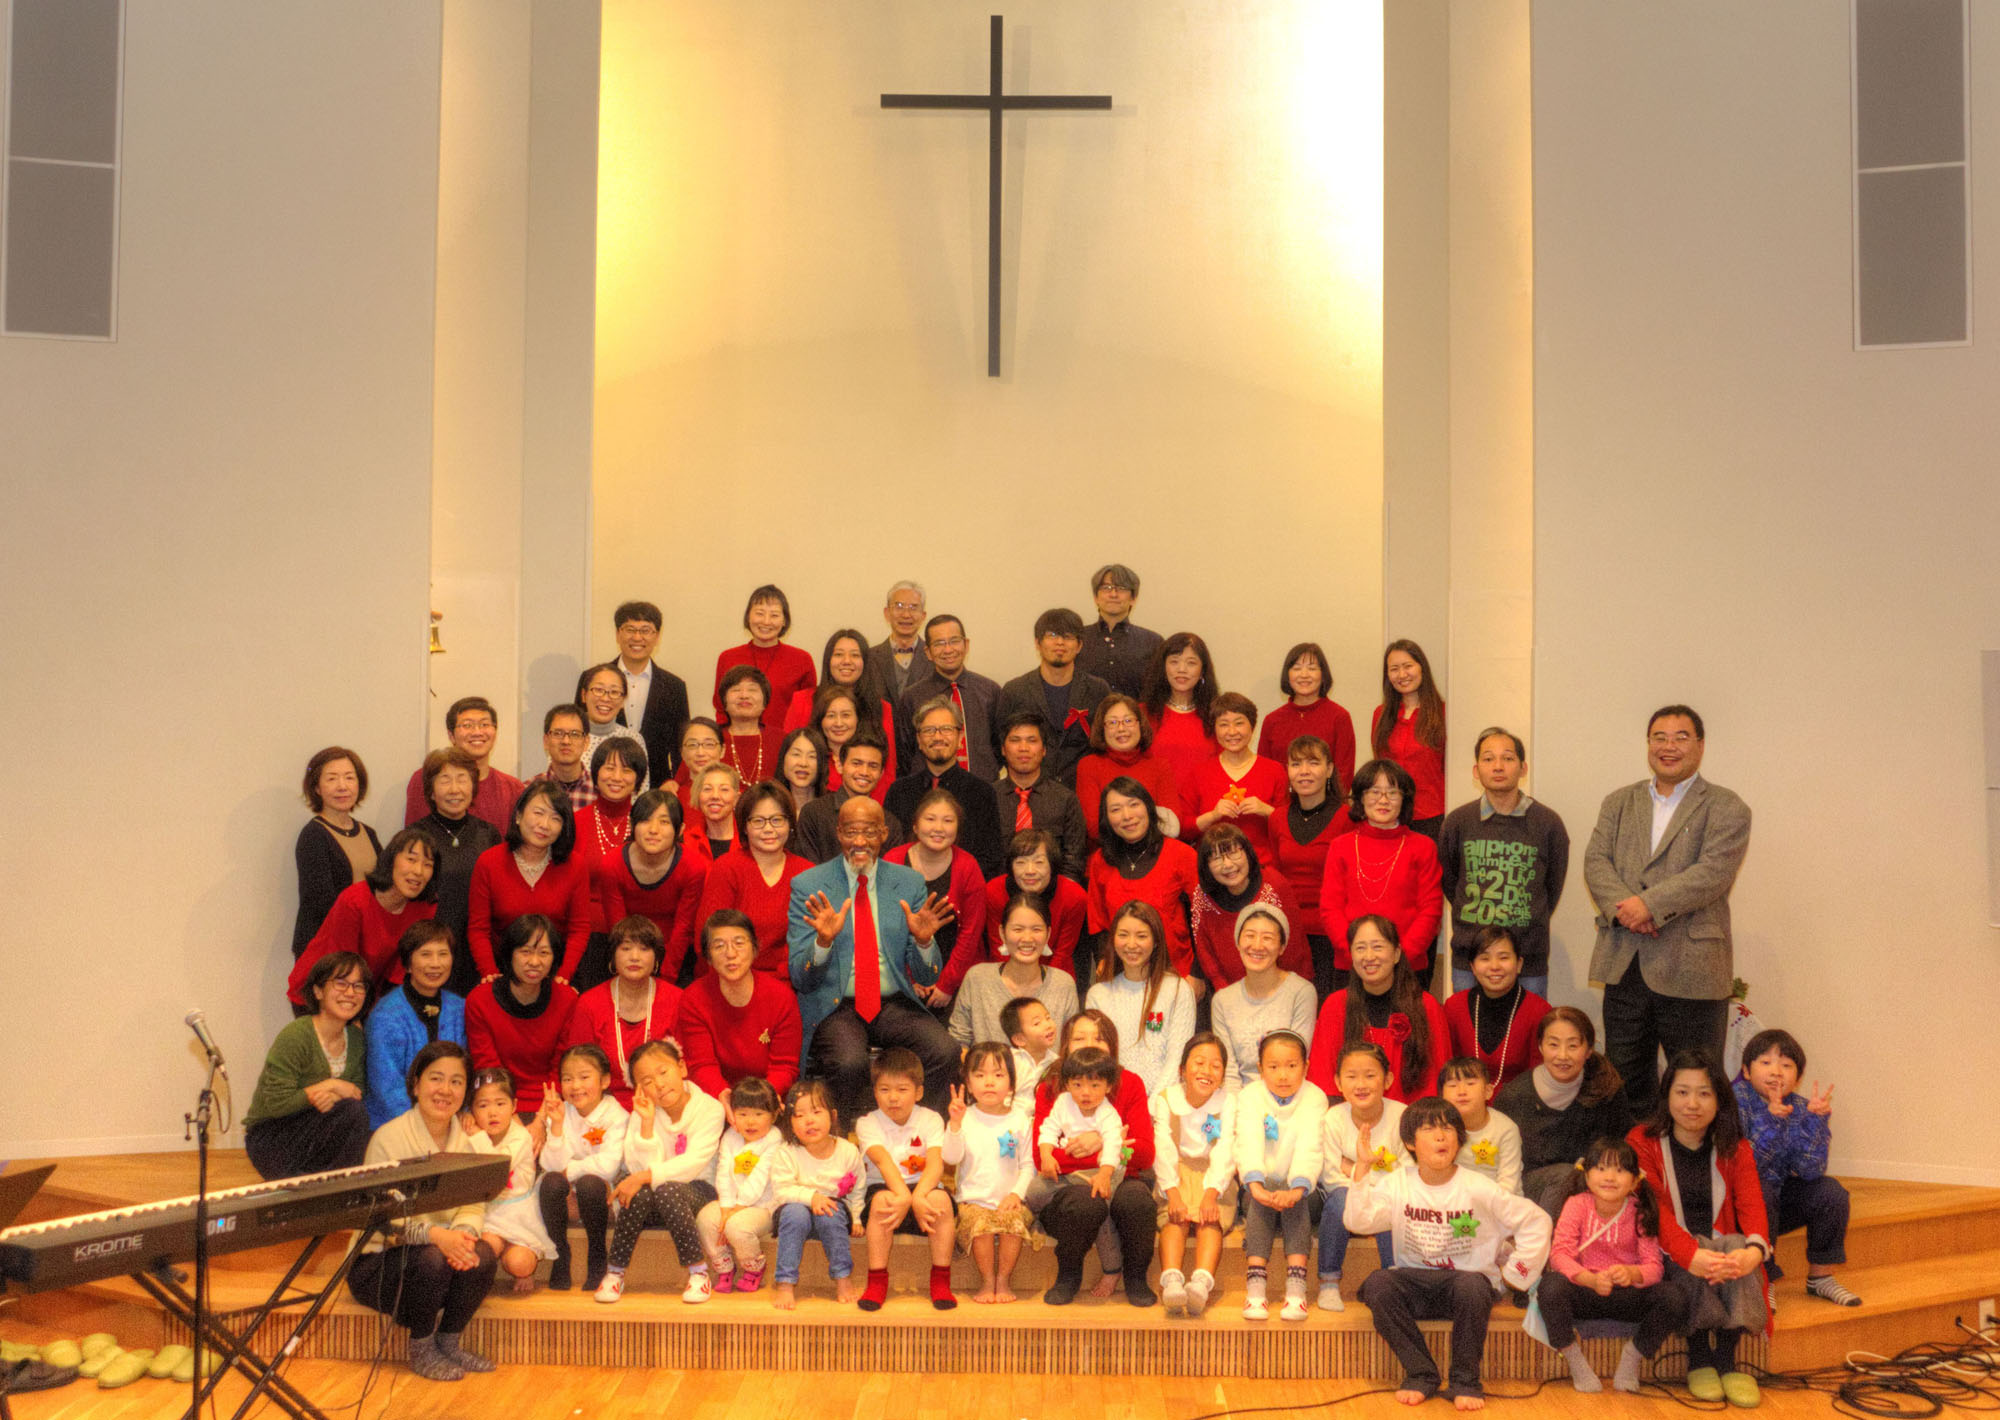 Nagasaki Baptist Church March 27 congregation photo